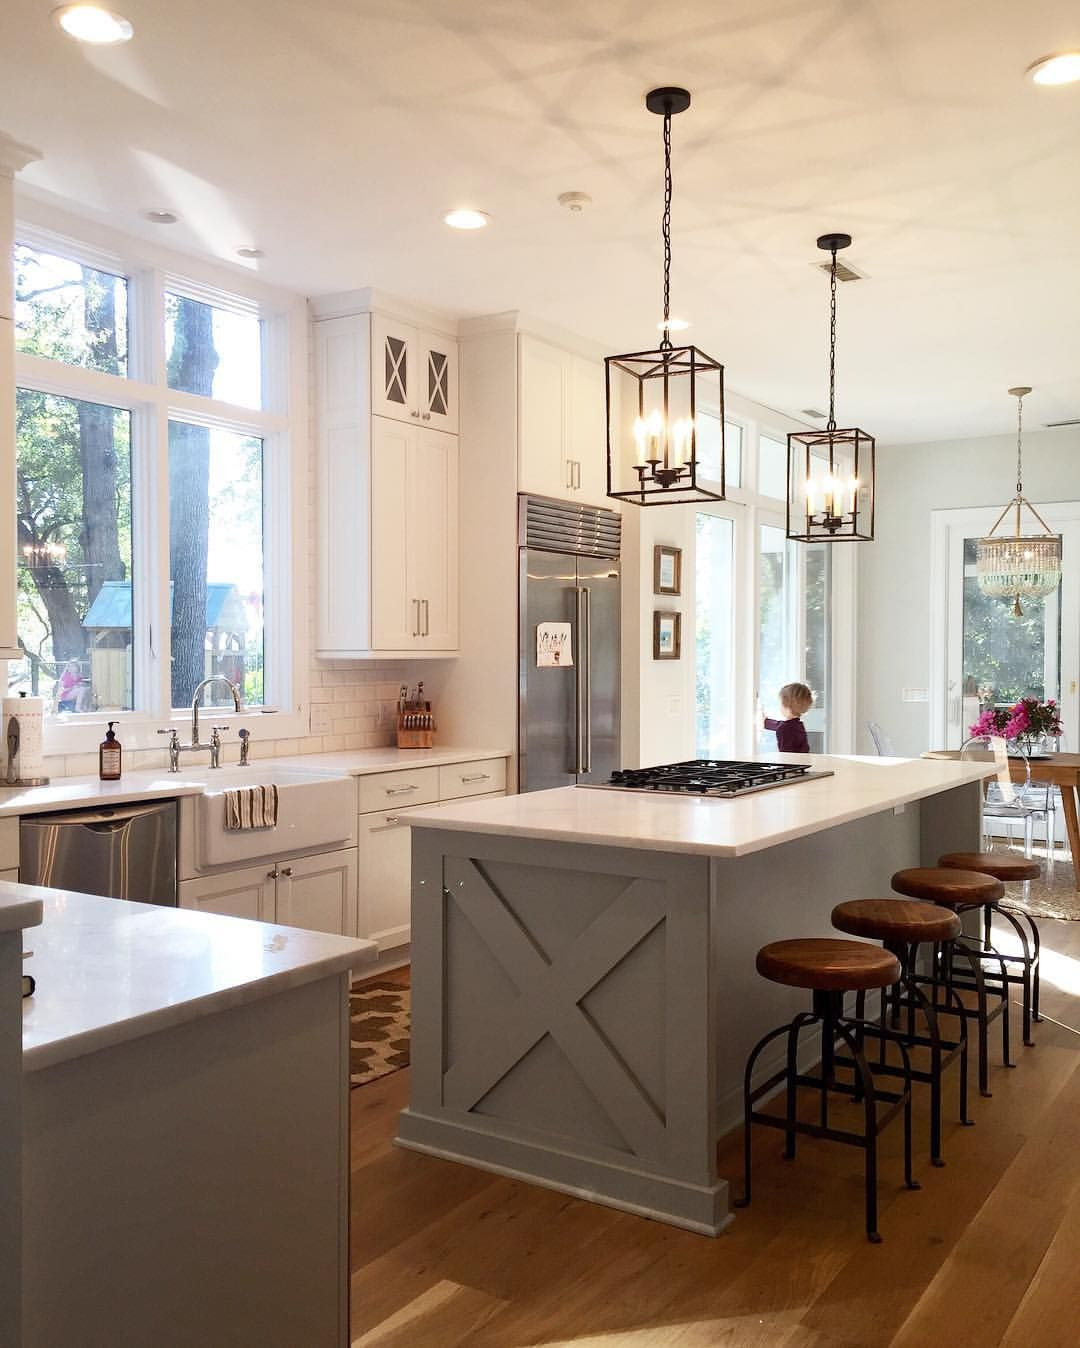 Kitchen Lanterns Best Rated Faucets Jane Paraschos On Instagram Morning Light Clean By Ballarddesigns Other Sources Tagged